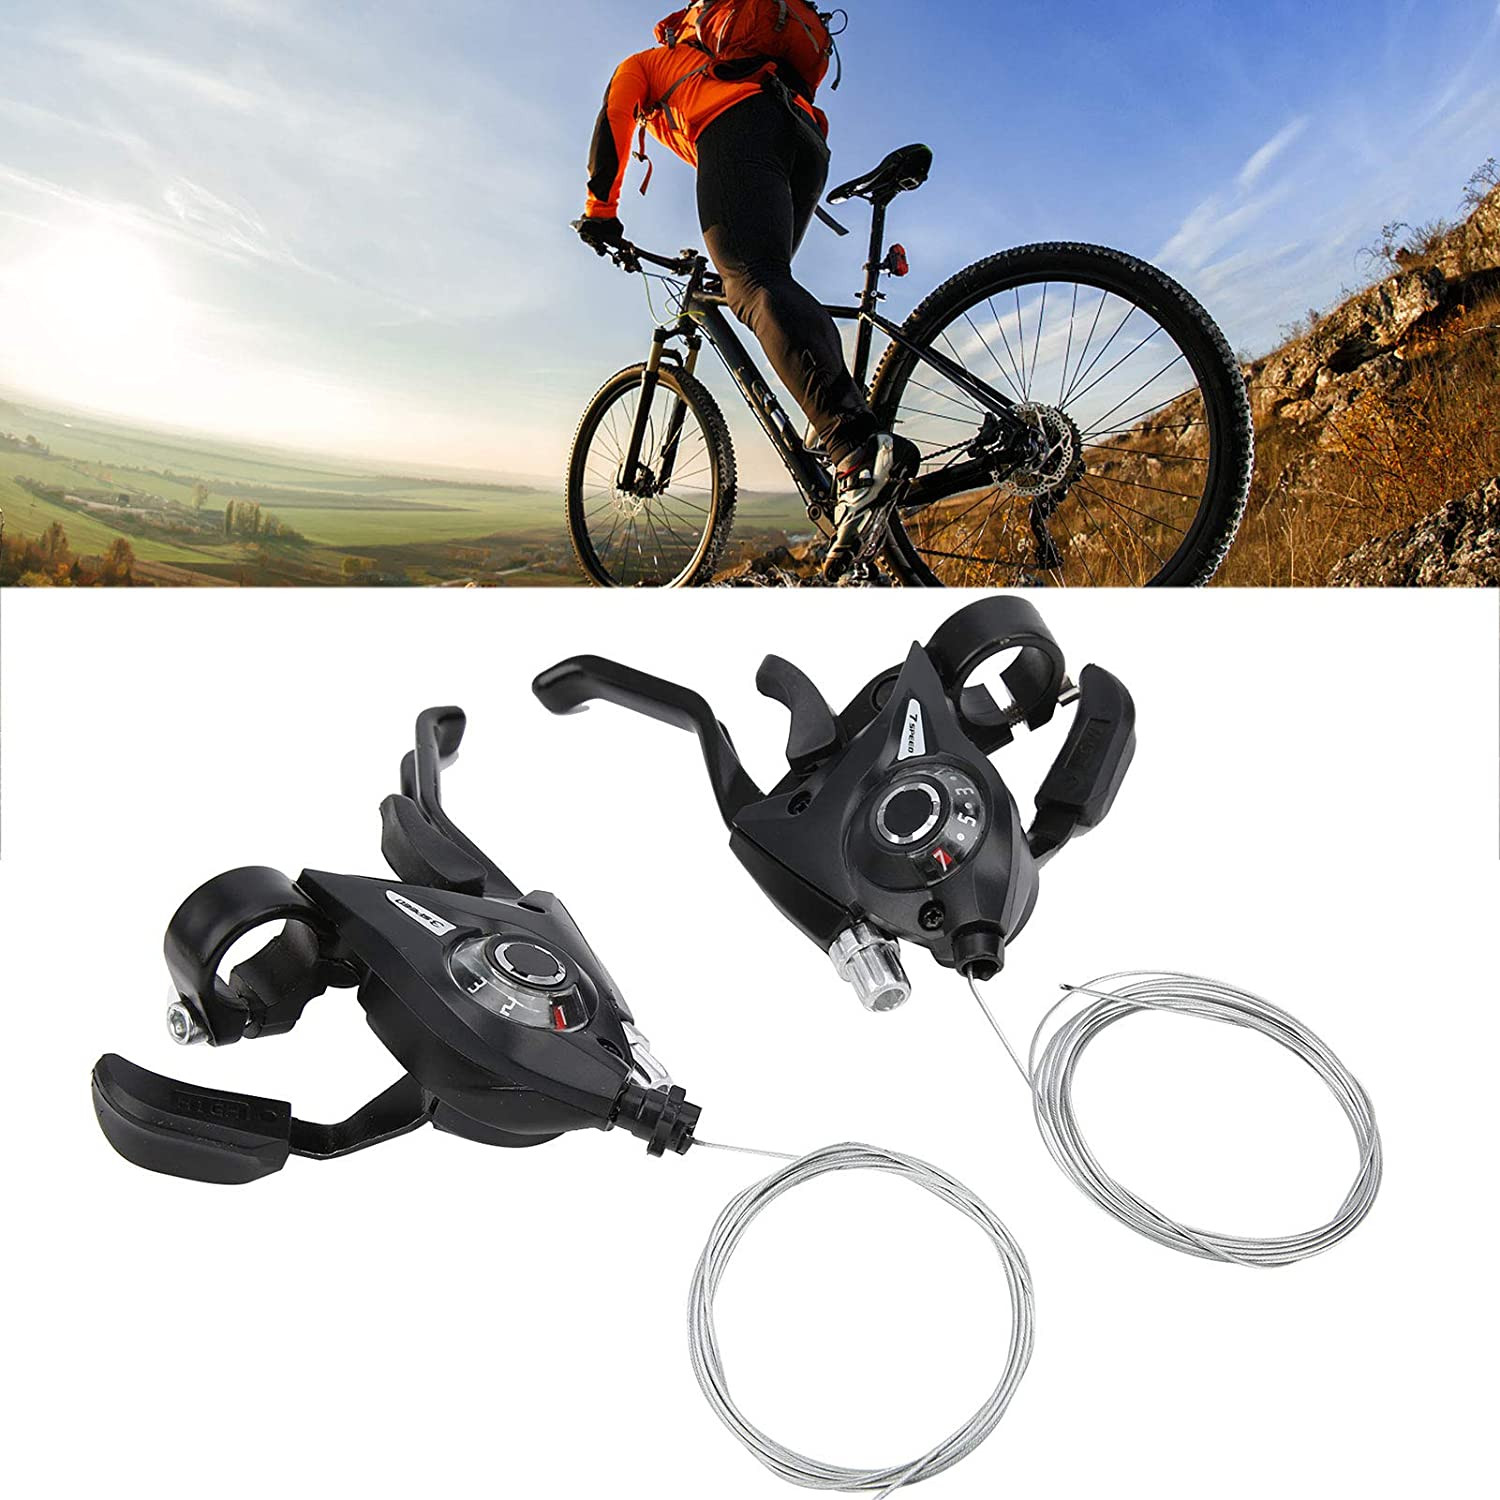 eboxer-1 3x7 21 Shifter New popularity Brake Lever Gear with Ind Display Surprise price Combo